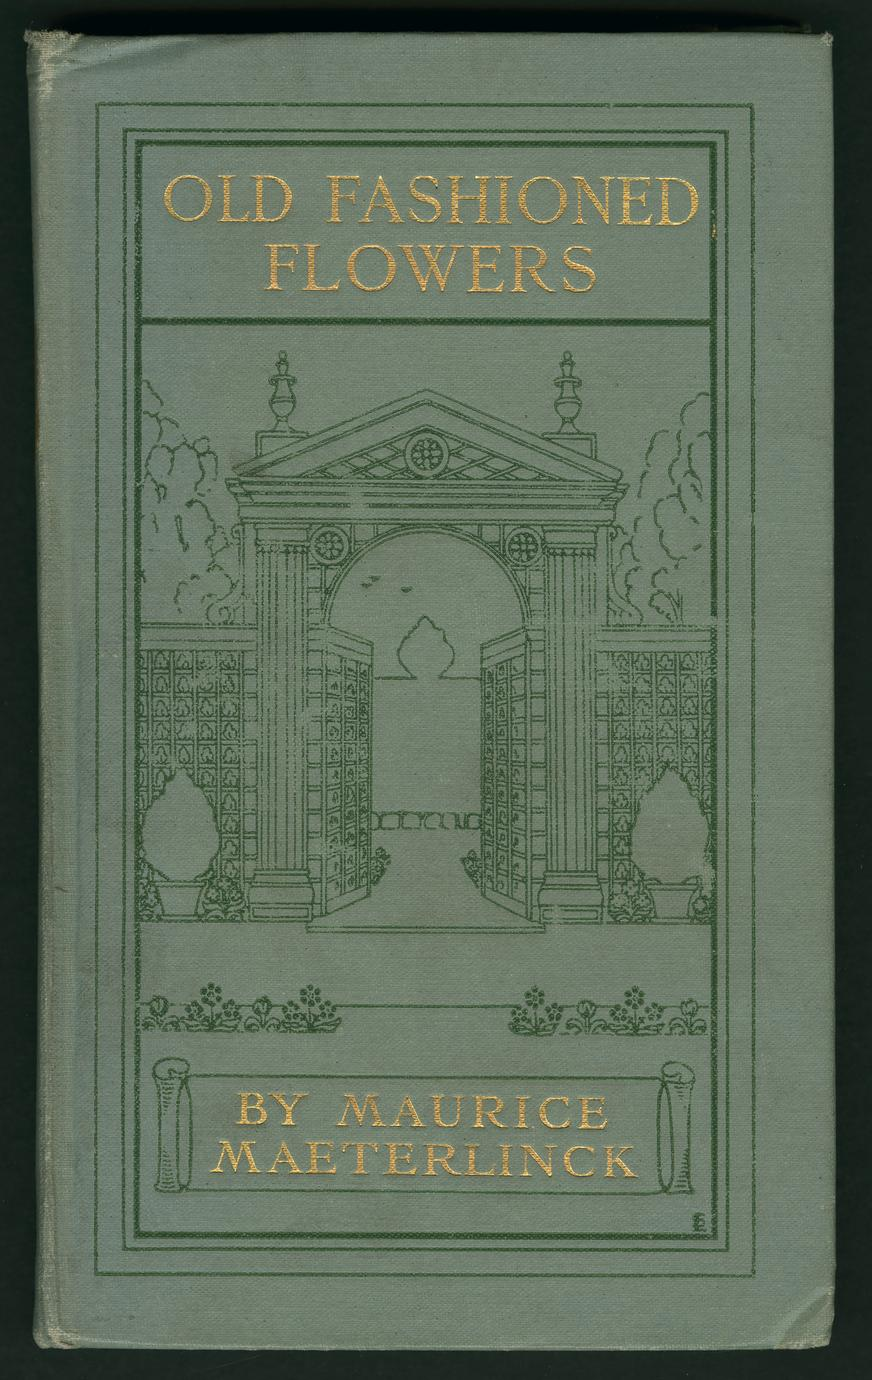 Maeterlinck, Maurice. Old fashioned flowers, and other out-of-door studies. New York : Dodd, Mead & co., 1905. Special Collections. Call number: RZD M26 E. Binding digitized as part of Publishers' Bindings Online.